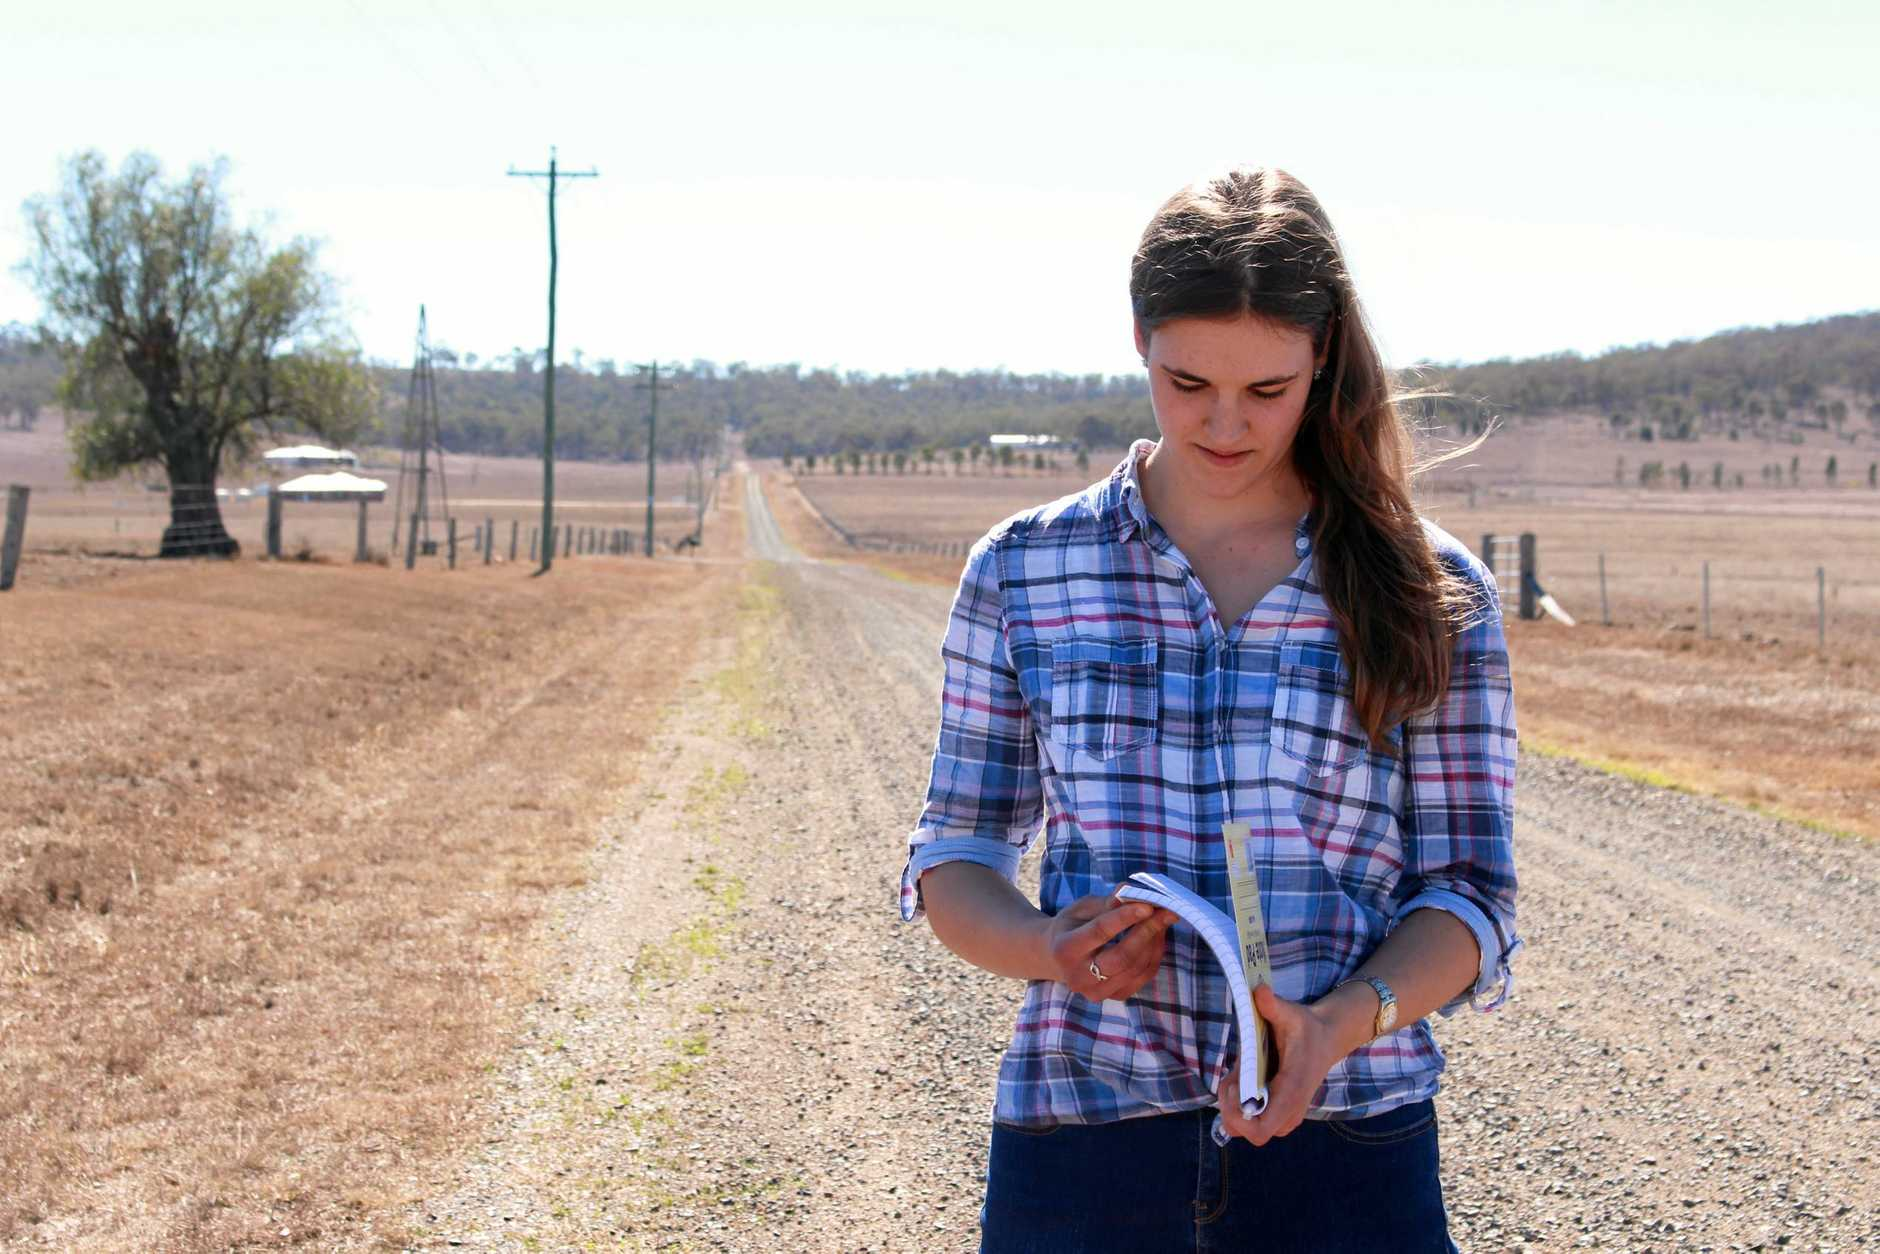 18-year-old Melanie O'Dea is has written a written a heartfealt poem that goes out to farmers struggling through drought.